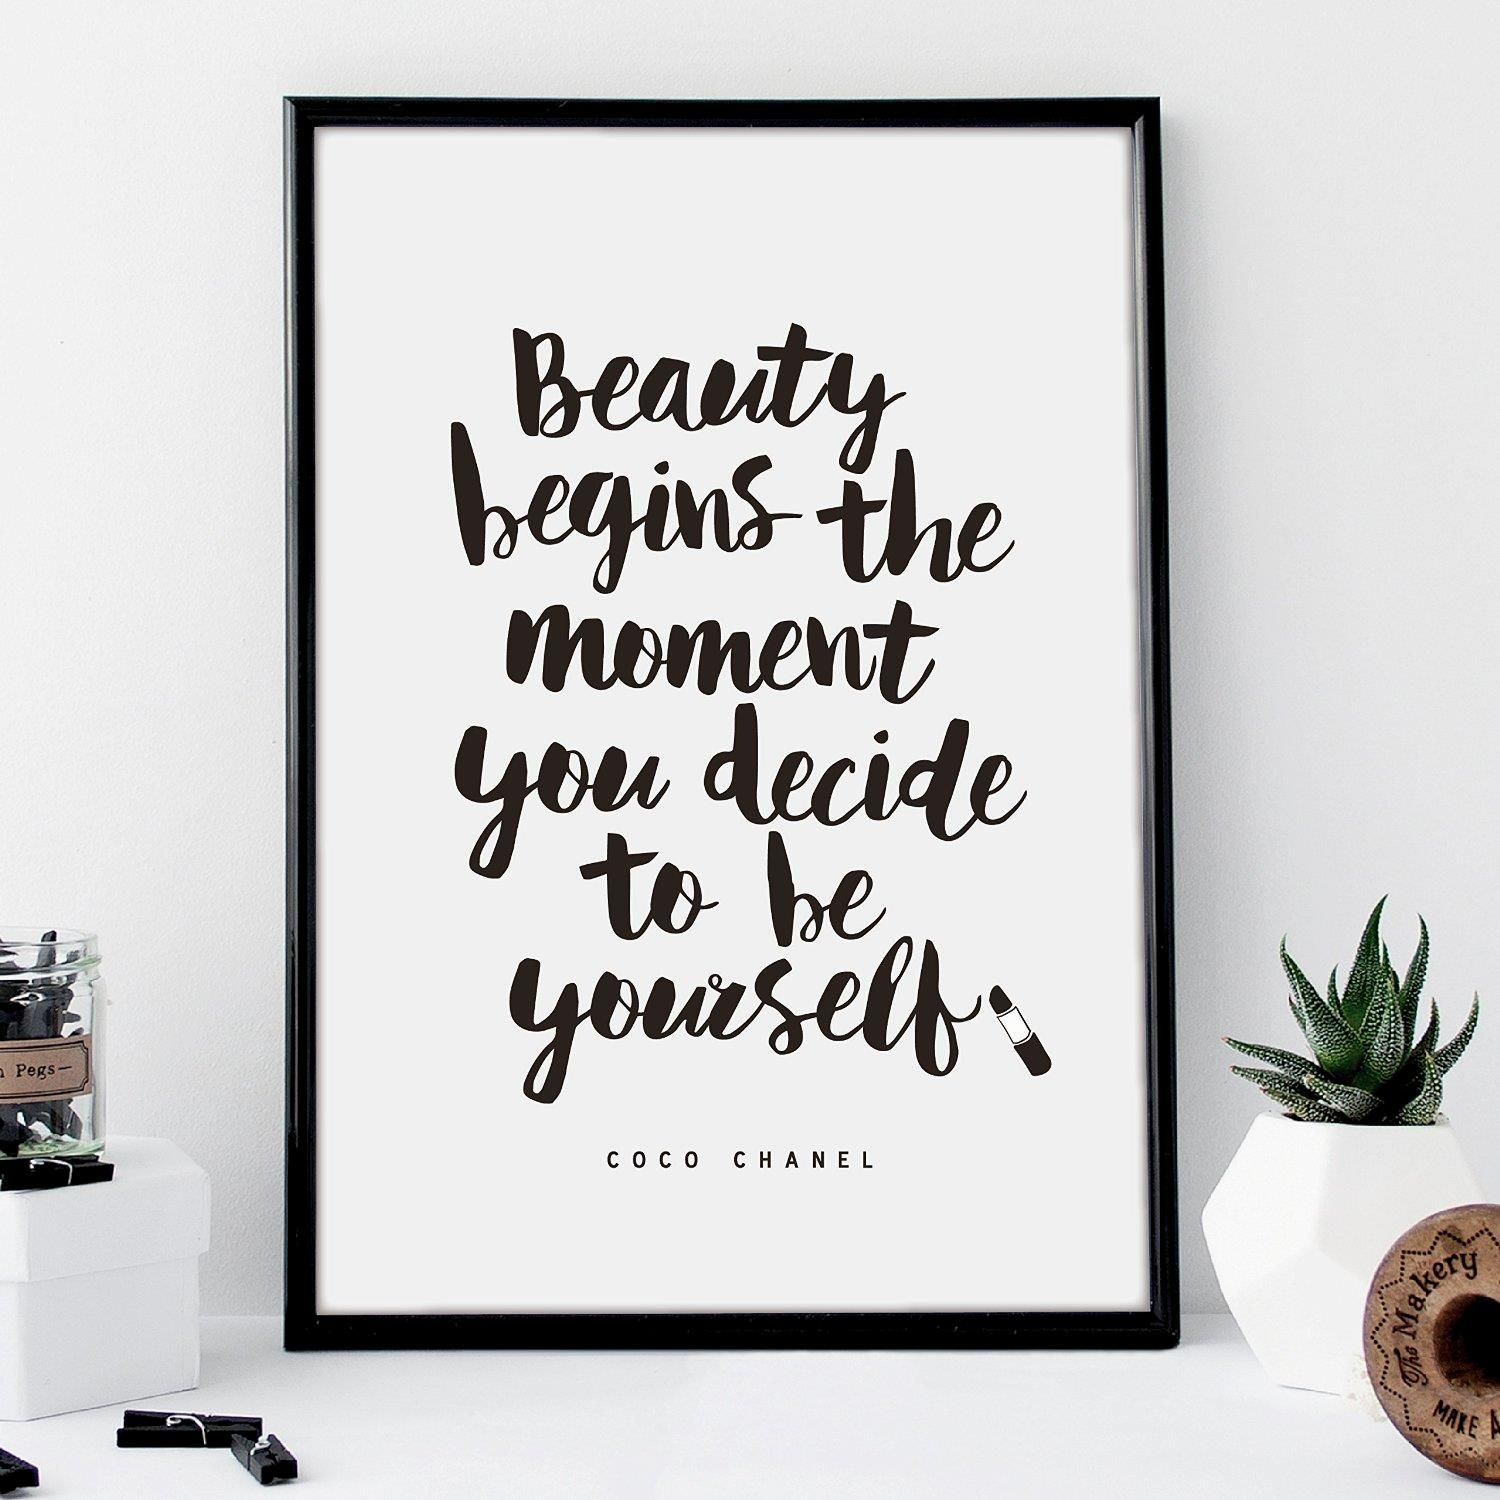 Beauty Begins the Moment You Decide to Be Yourself http://www.amazon.com/dp/B01ACAGBT6 motivationmonday print inspirational black white poster motivational quote inspiring gratitude word art bedroom beauty happiness success motivate inspire